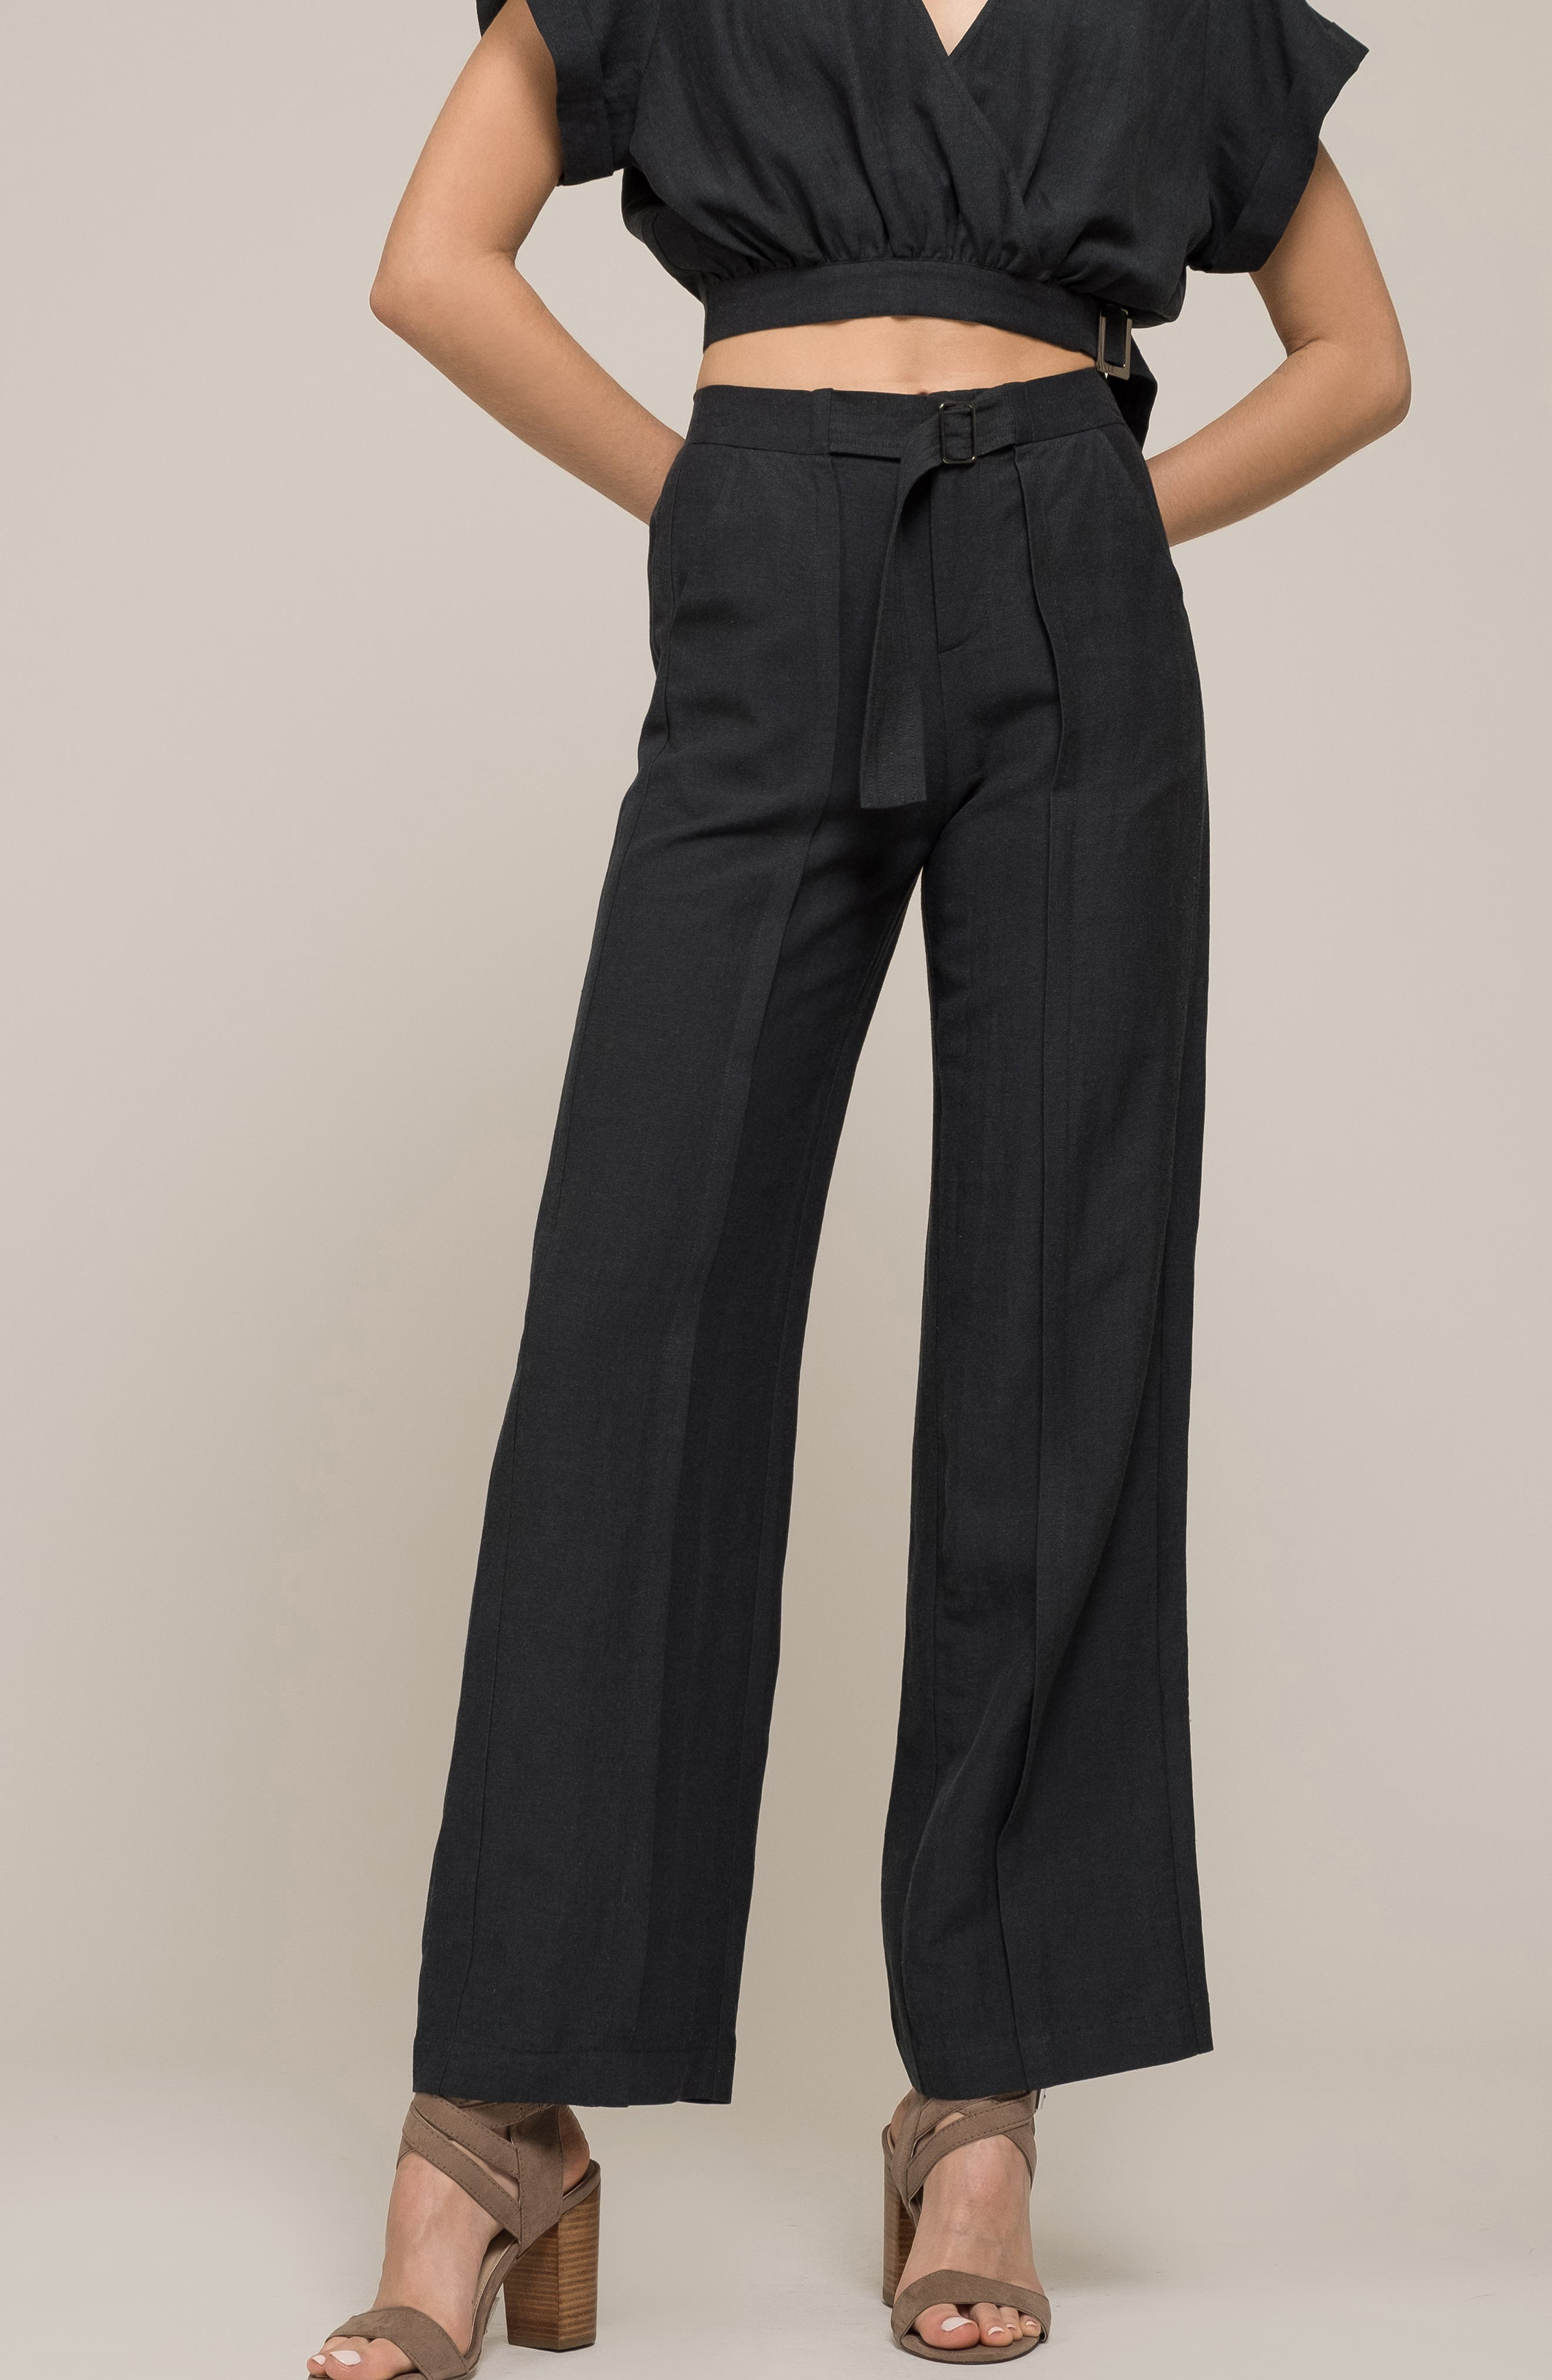 Belted High Waist Pants,                             Alternate thumbnail 7, color,                             FOREST